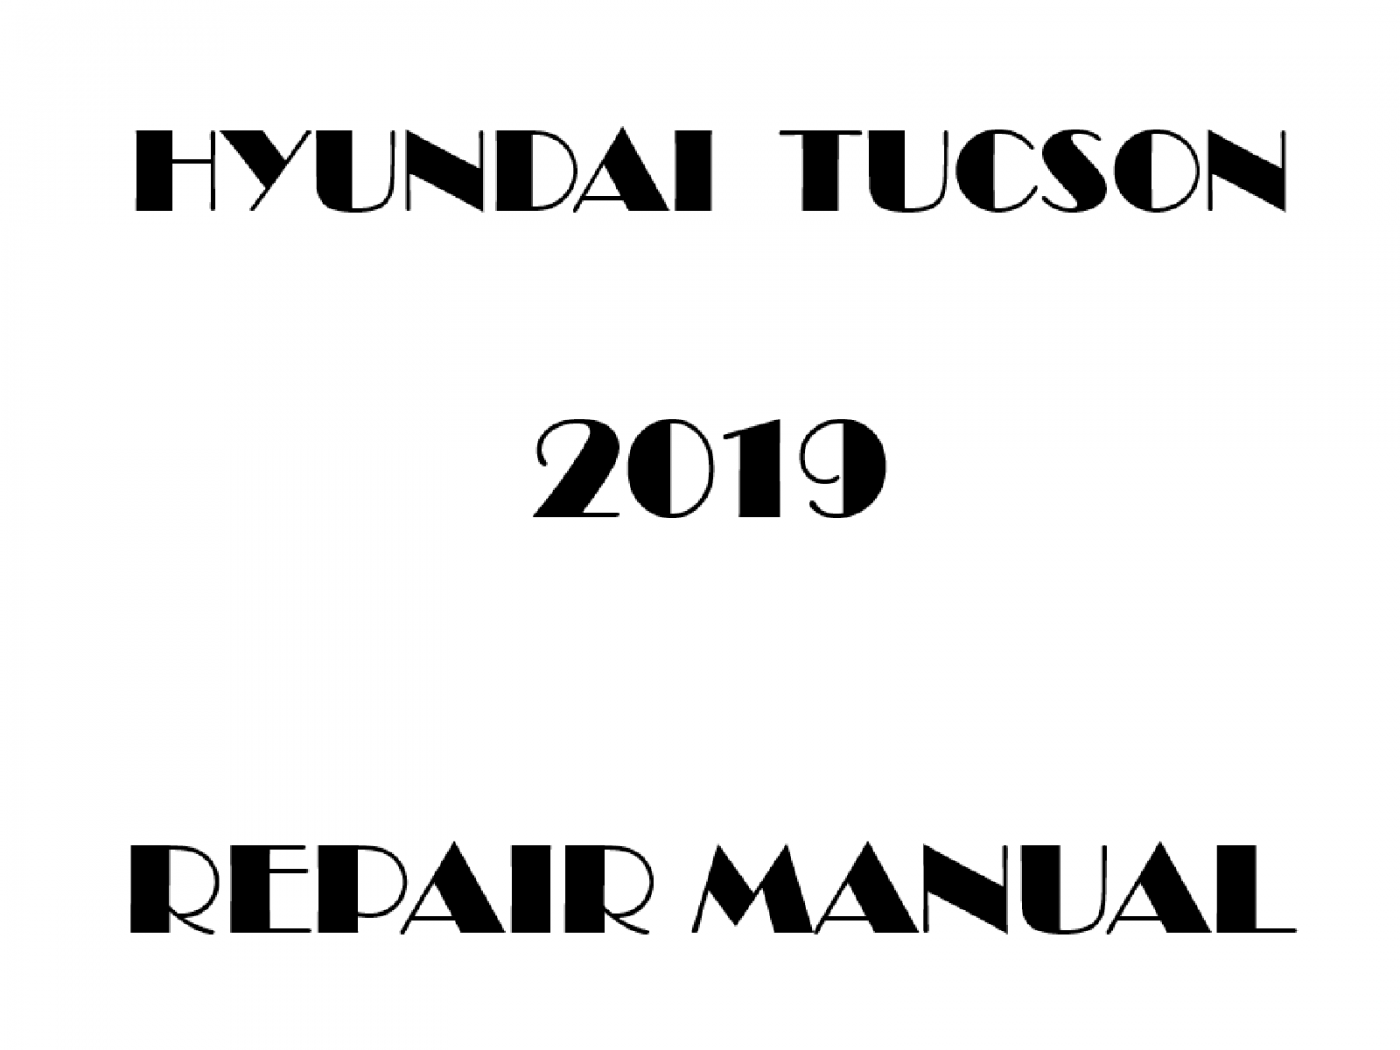 2019 Hyundai Tucson repair manual